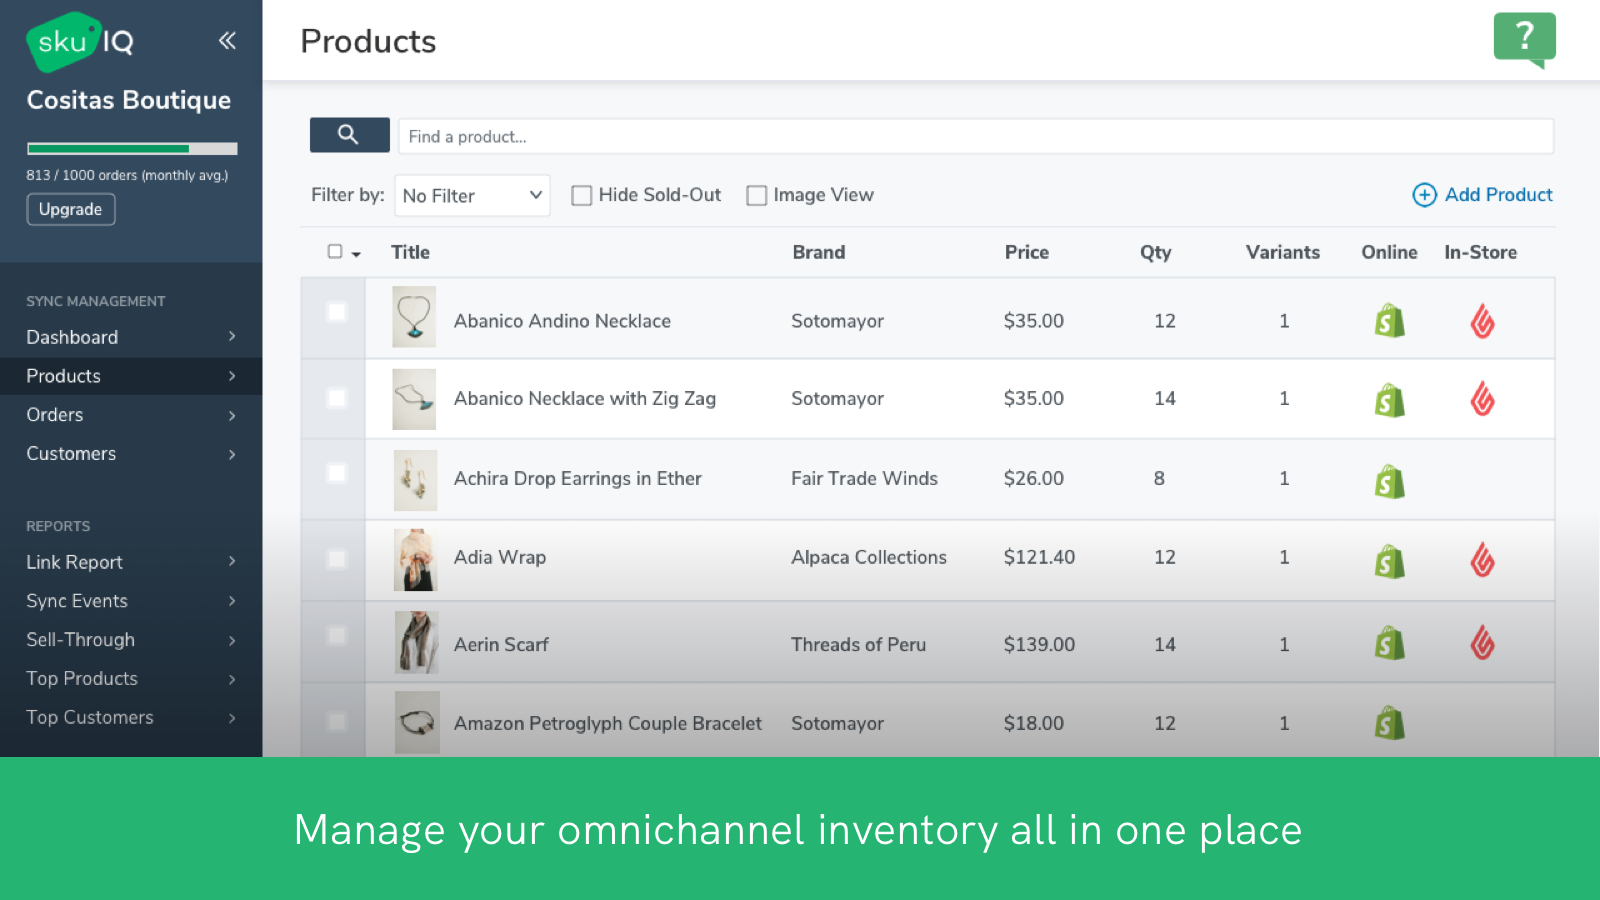 Screen view of SKU IQ Products page